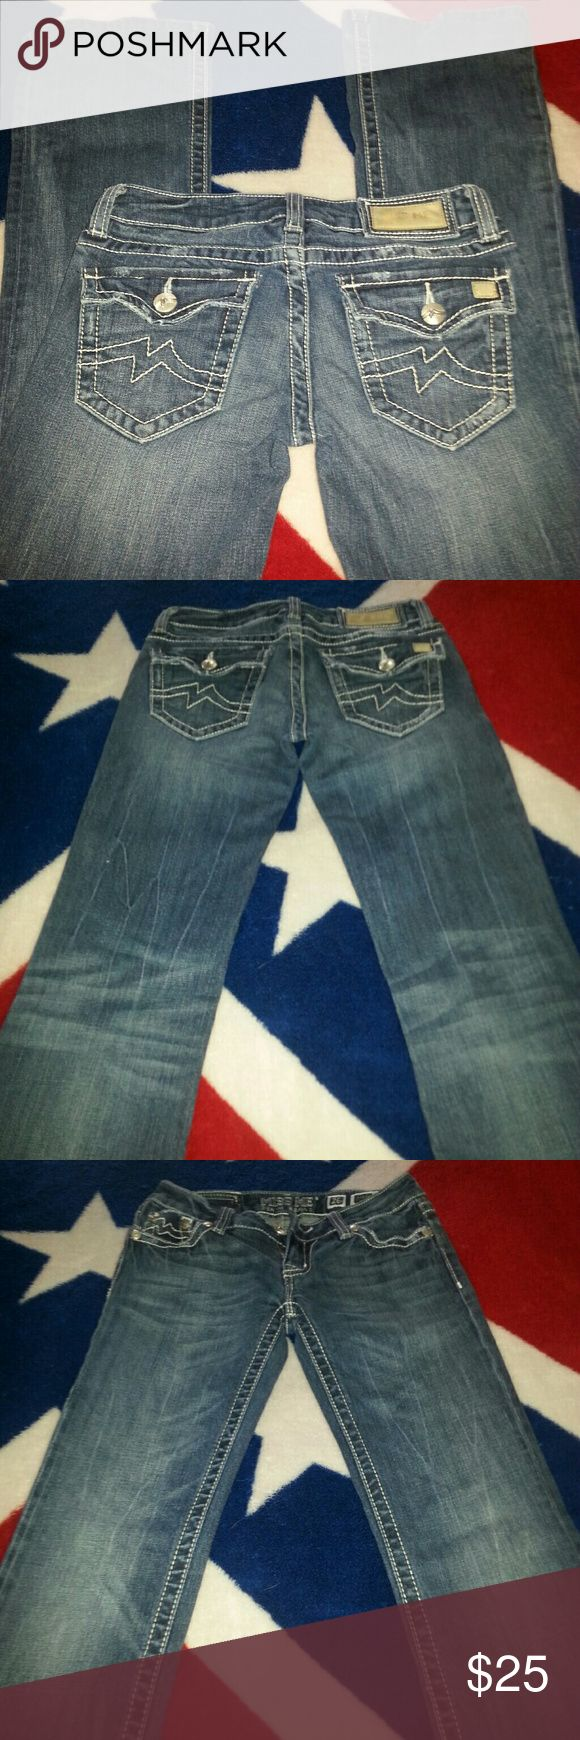 Miss Me Jeans Miss Mes cute and ready quick sale Miss Me Jeans Boot Cut